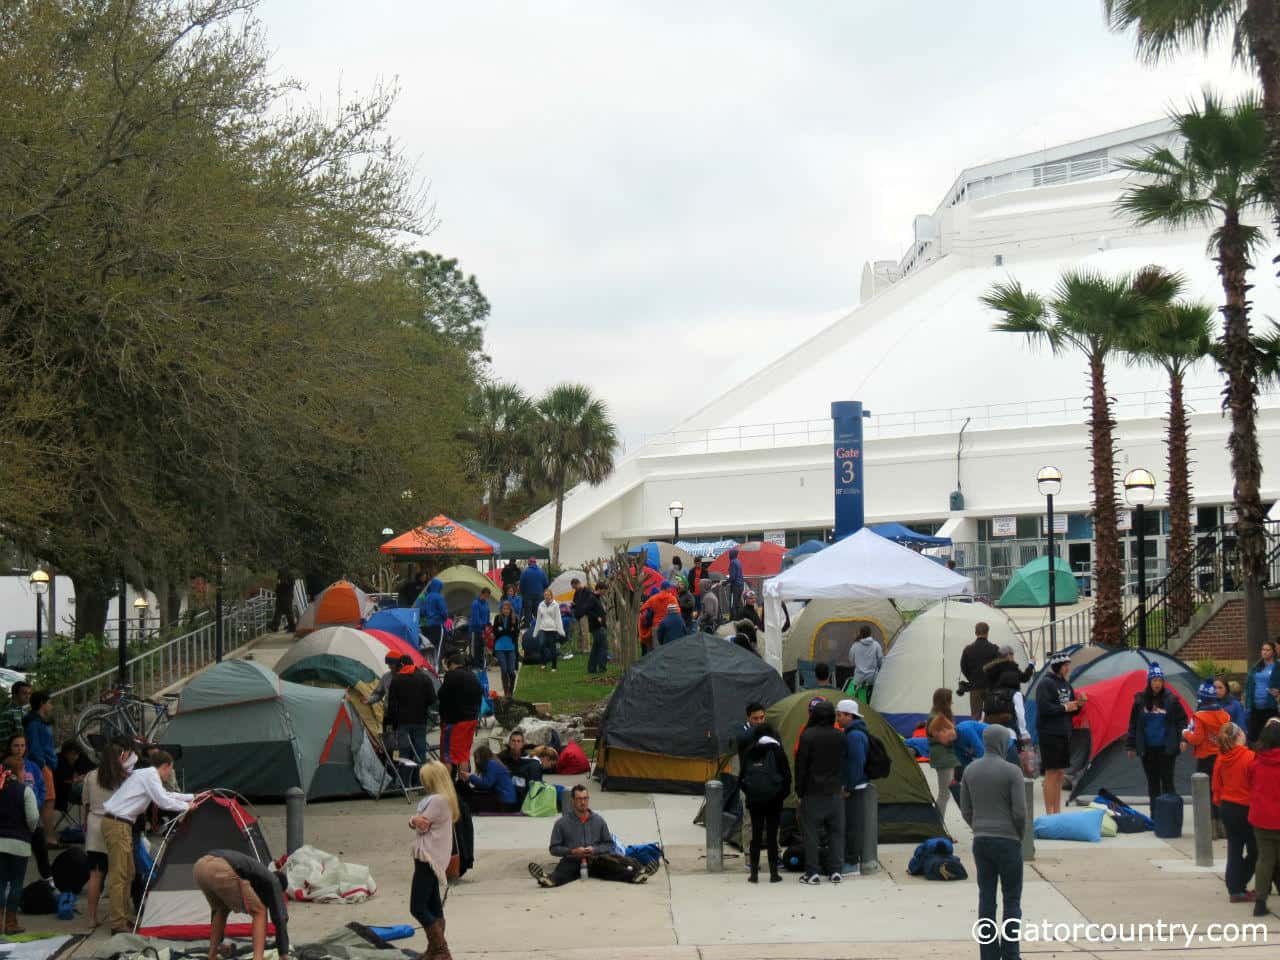 18 hours before the game many students were already in position to campout.